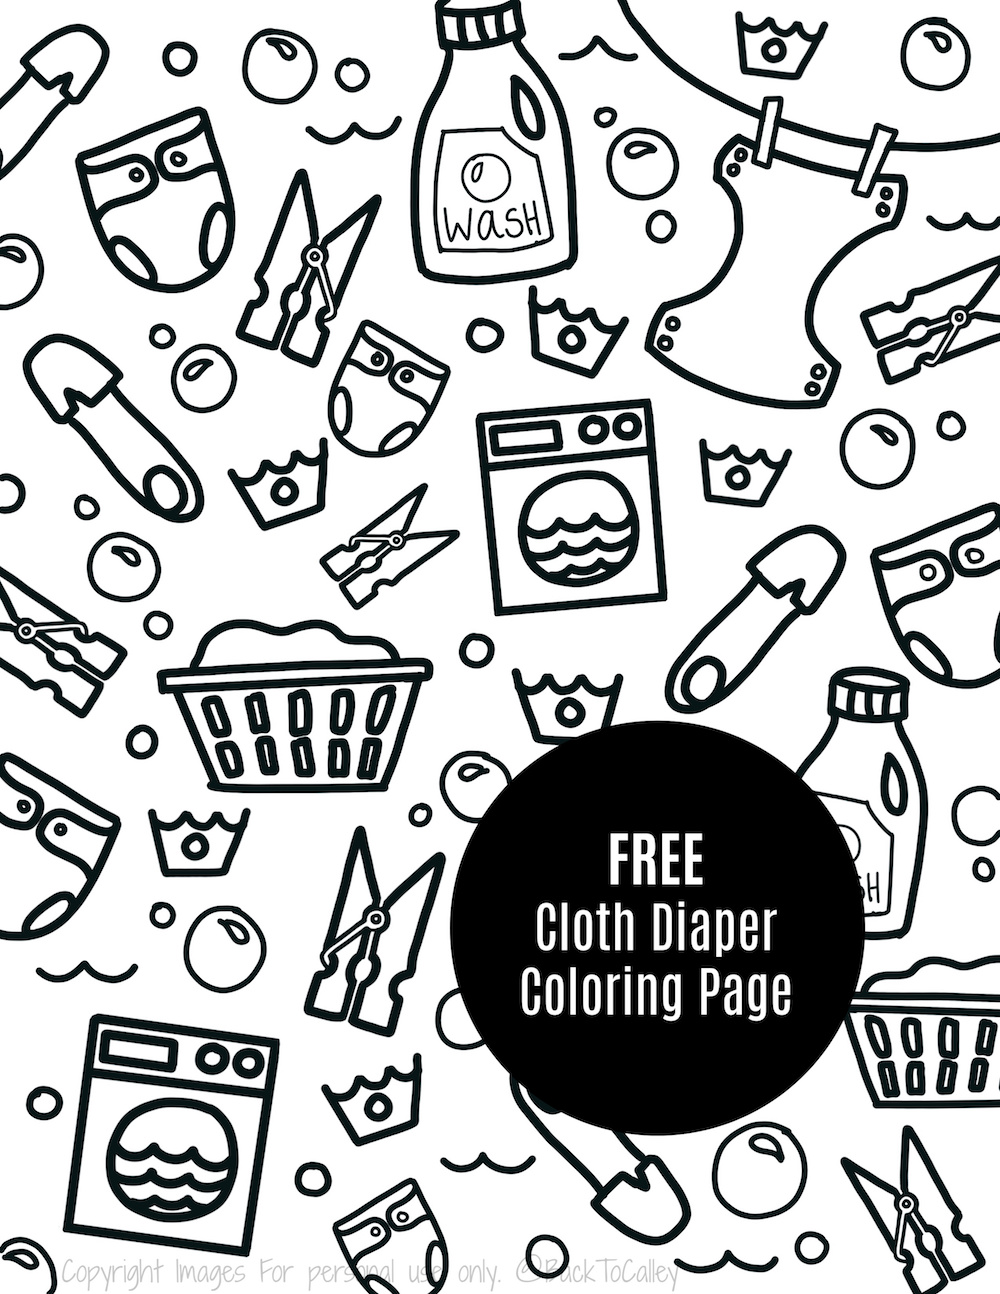 FREE Cloth Diapering Coloring Page — A Tampa Lifestyle, Travel ...